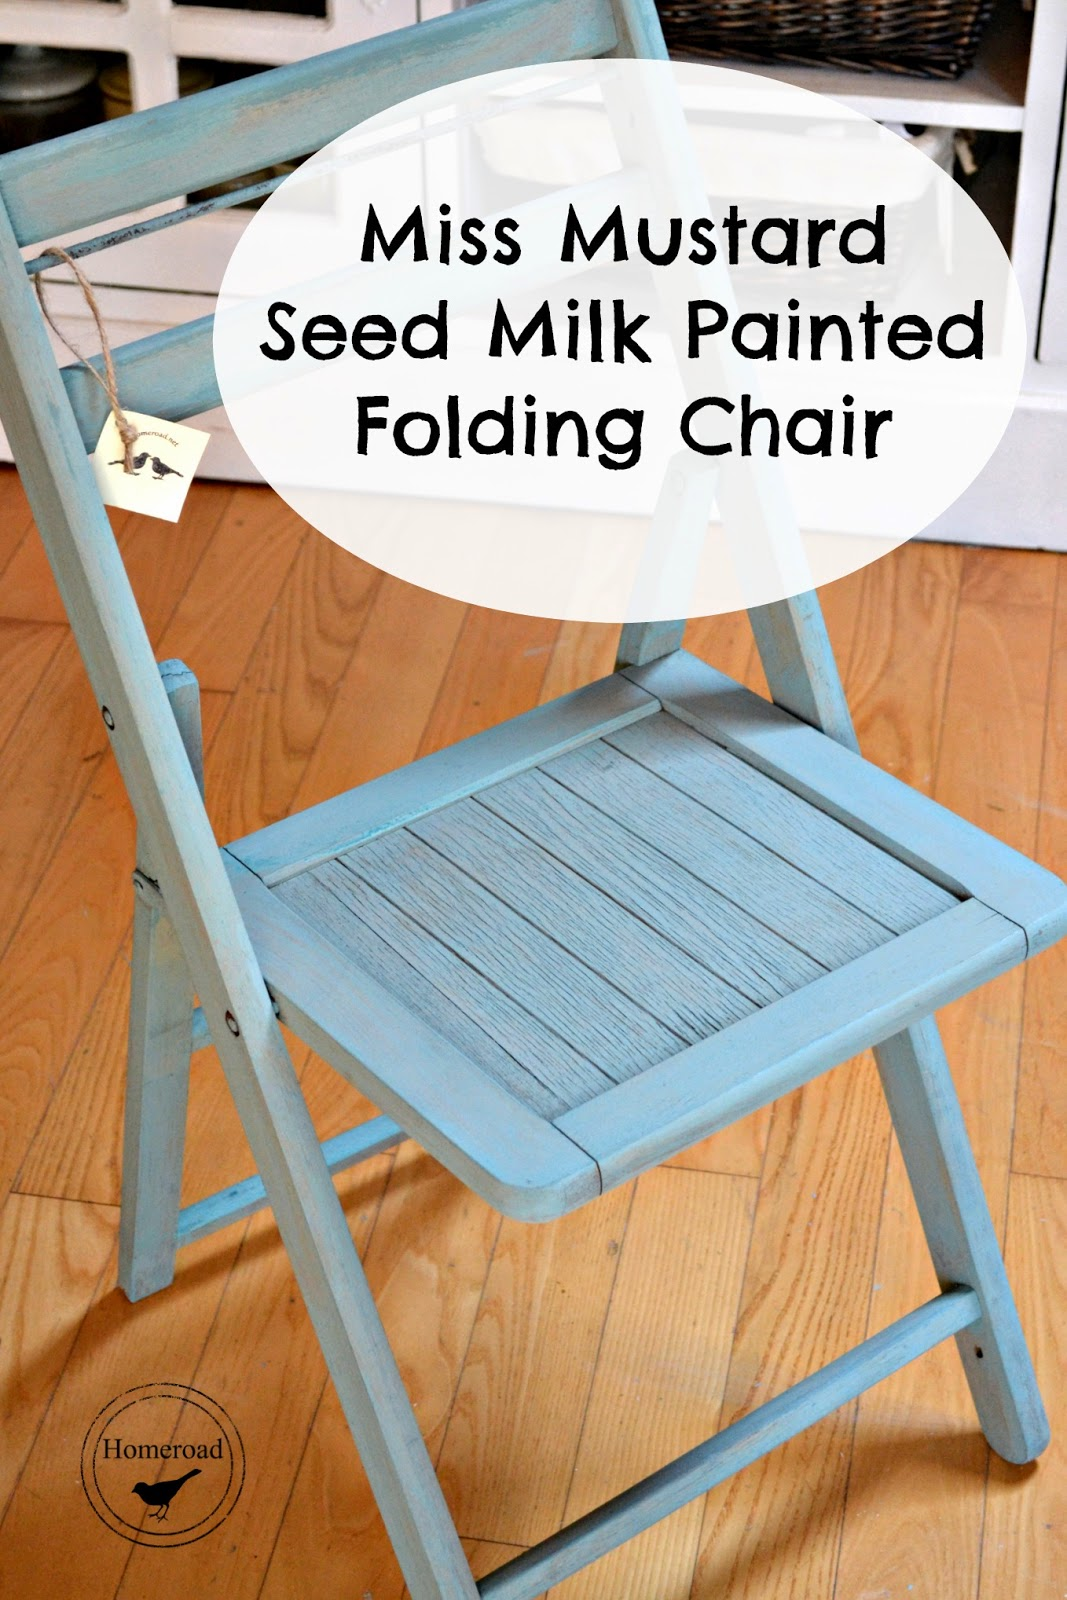 Miss-Mustard-Seed-Milk-Painted-Folding-Chairs www.homeroad.net